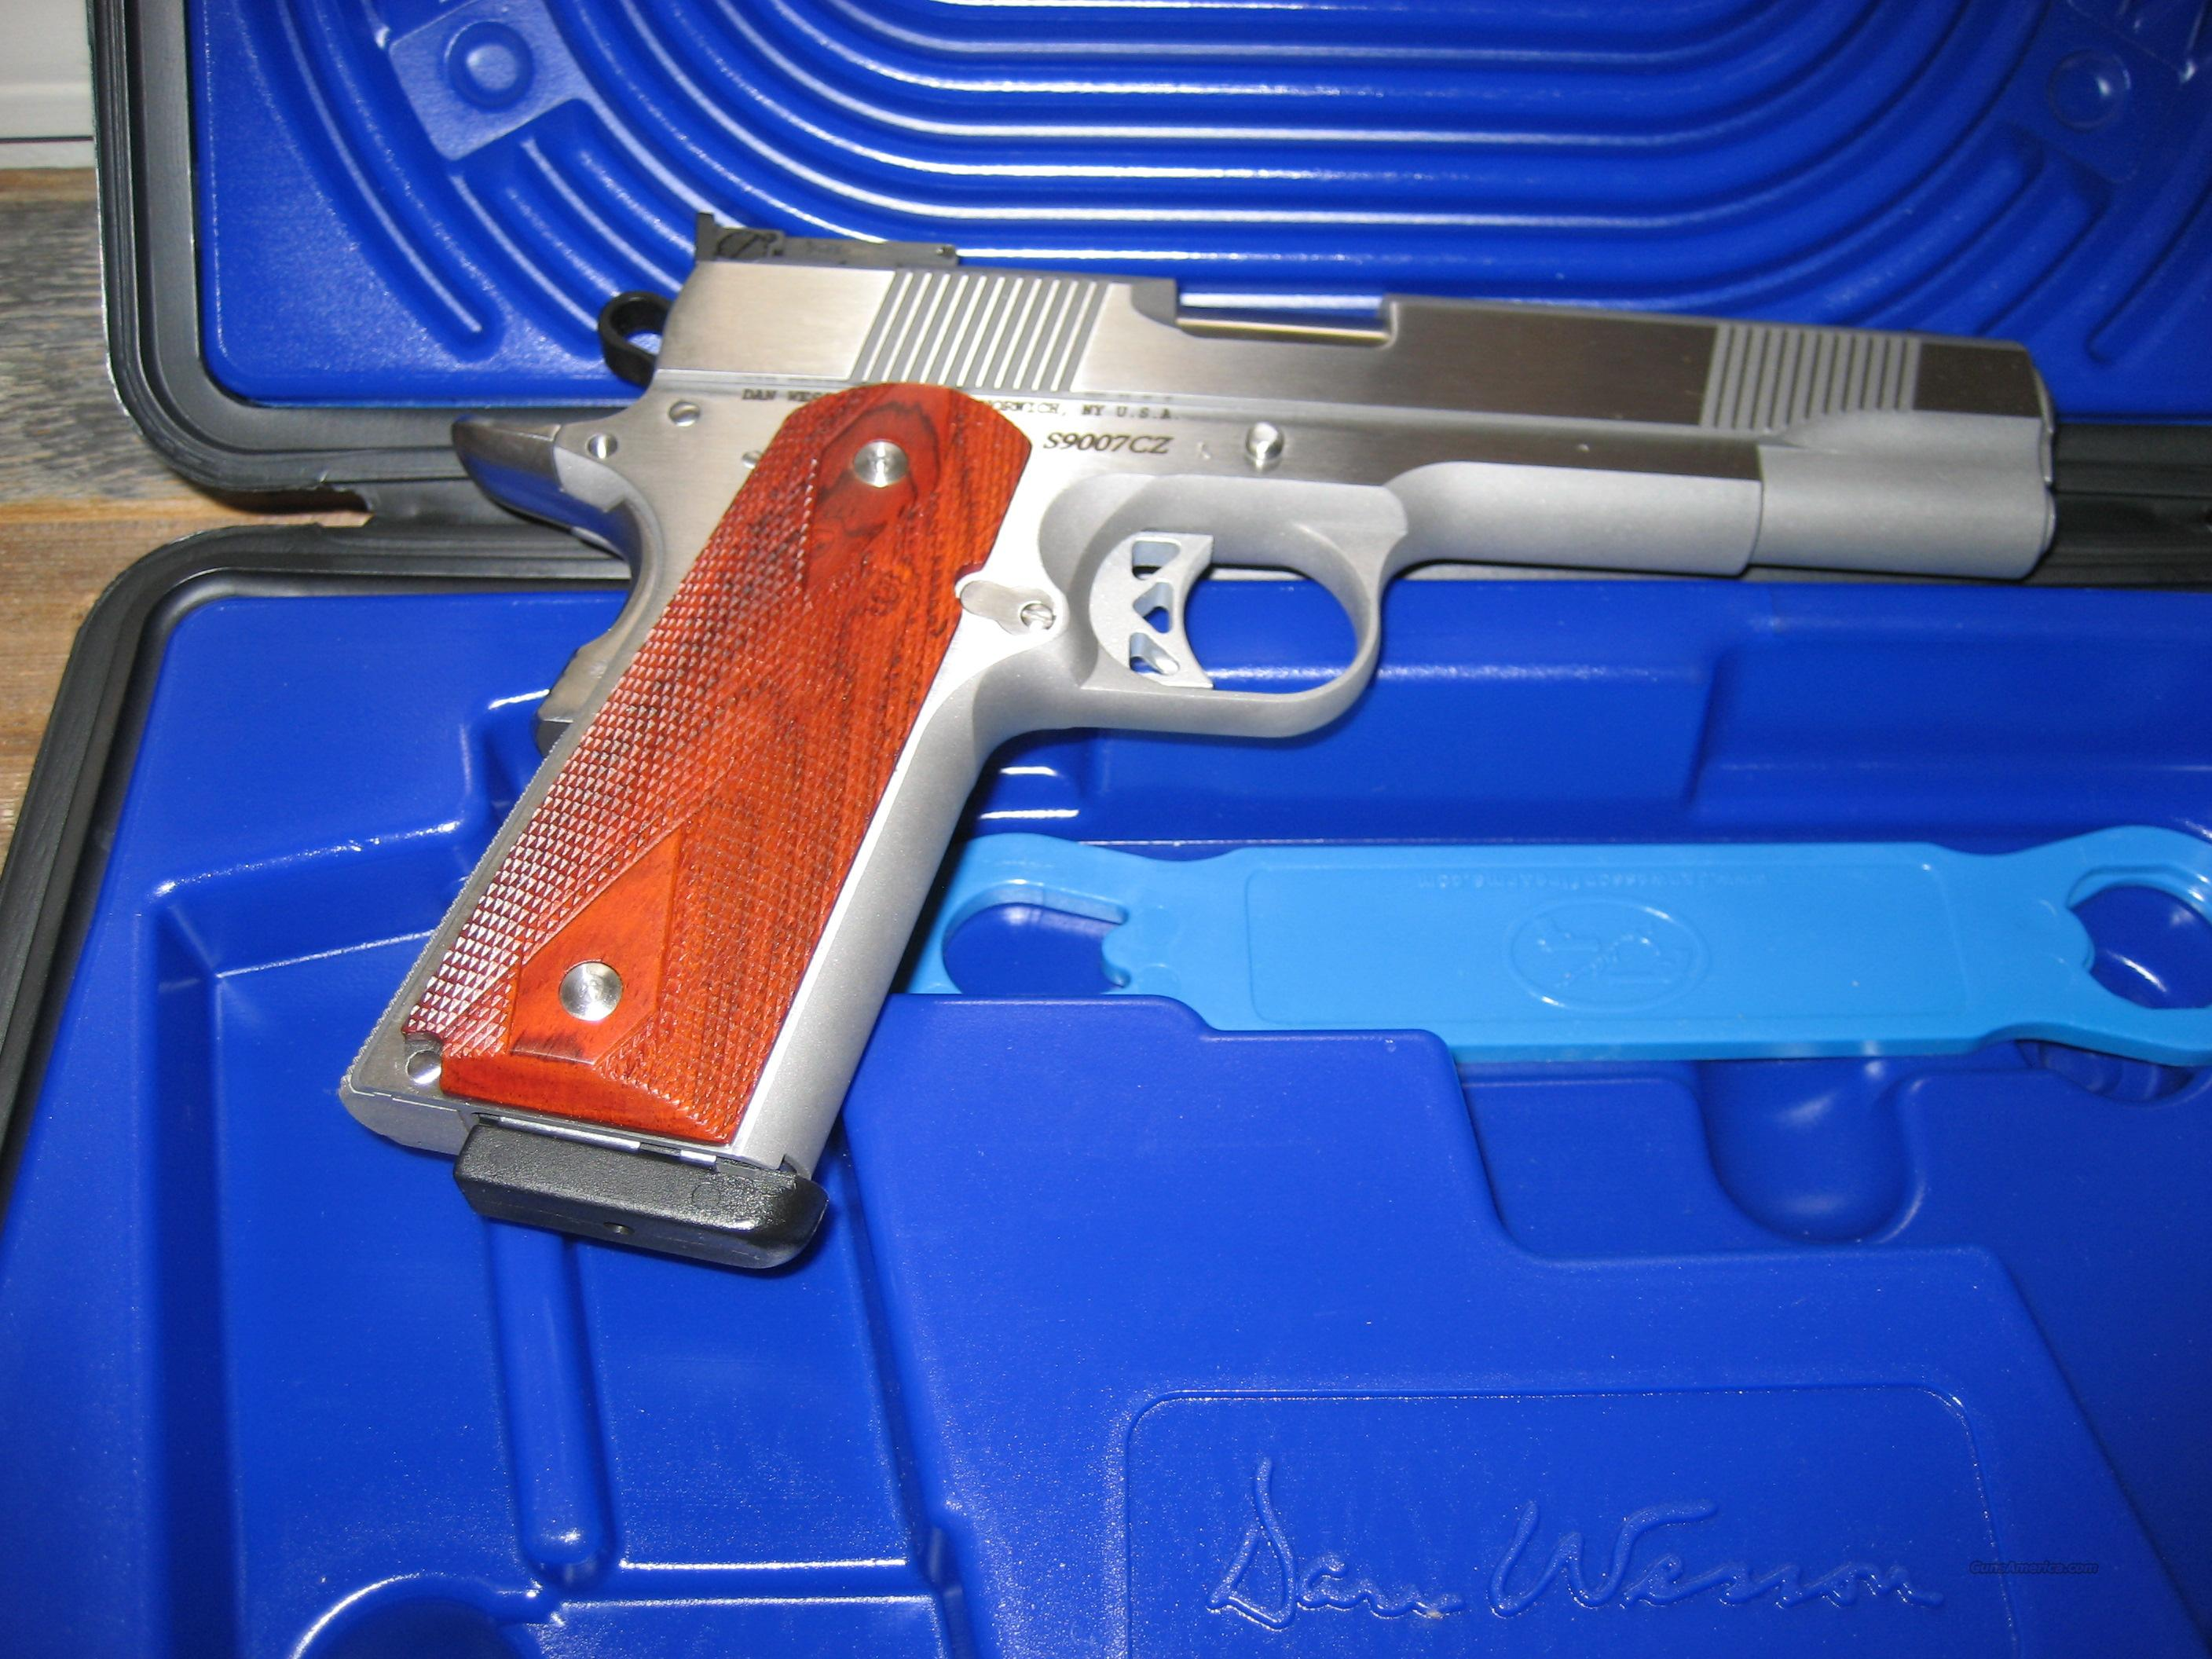 DAN WESSON POINTMAN NINE (PM9)  Guns > Pistols > 1911 Pistol Copies (non-Colt)